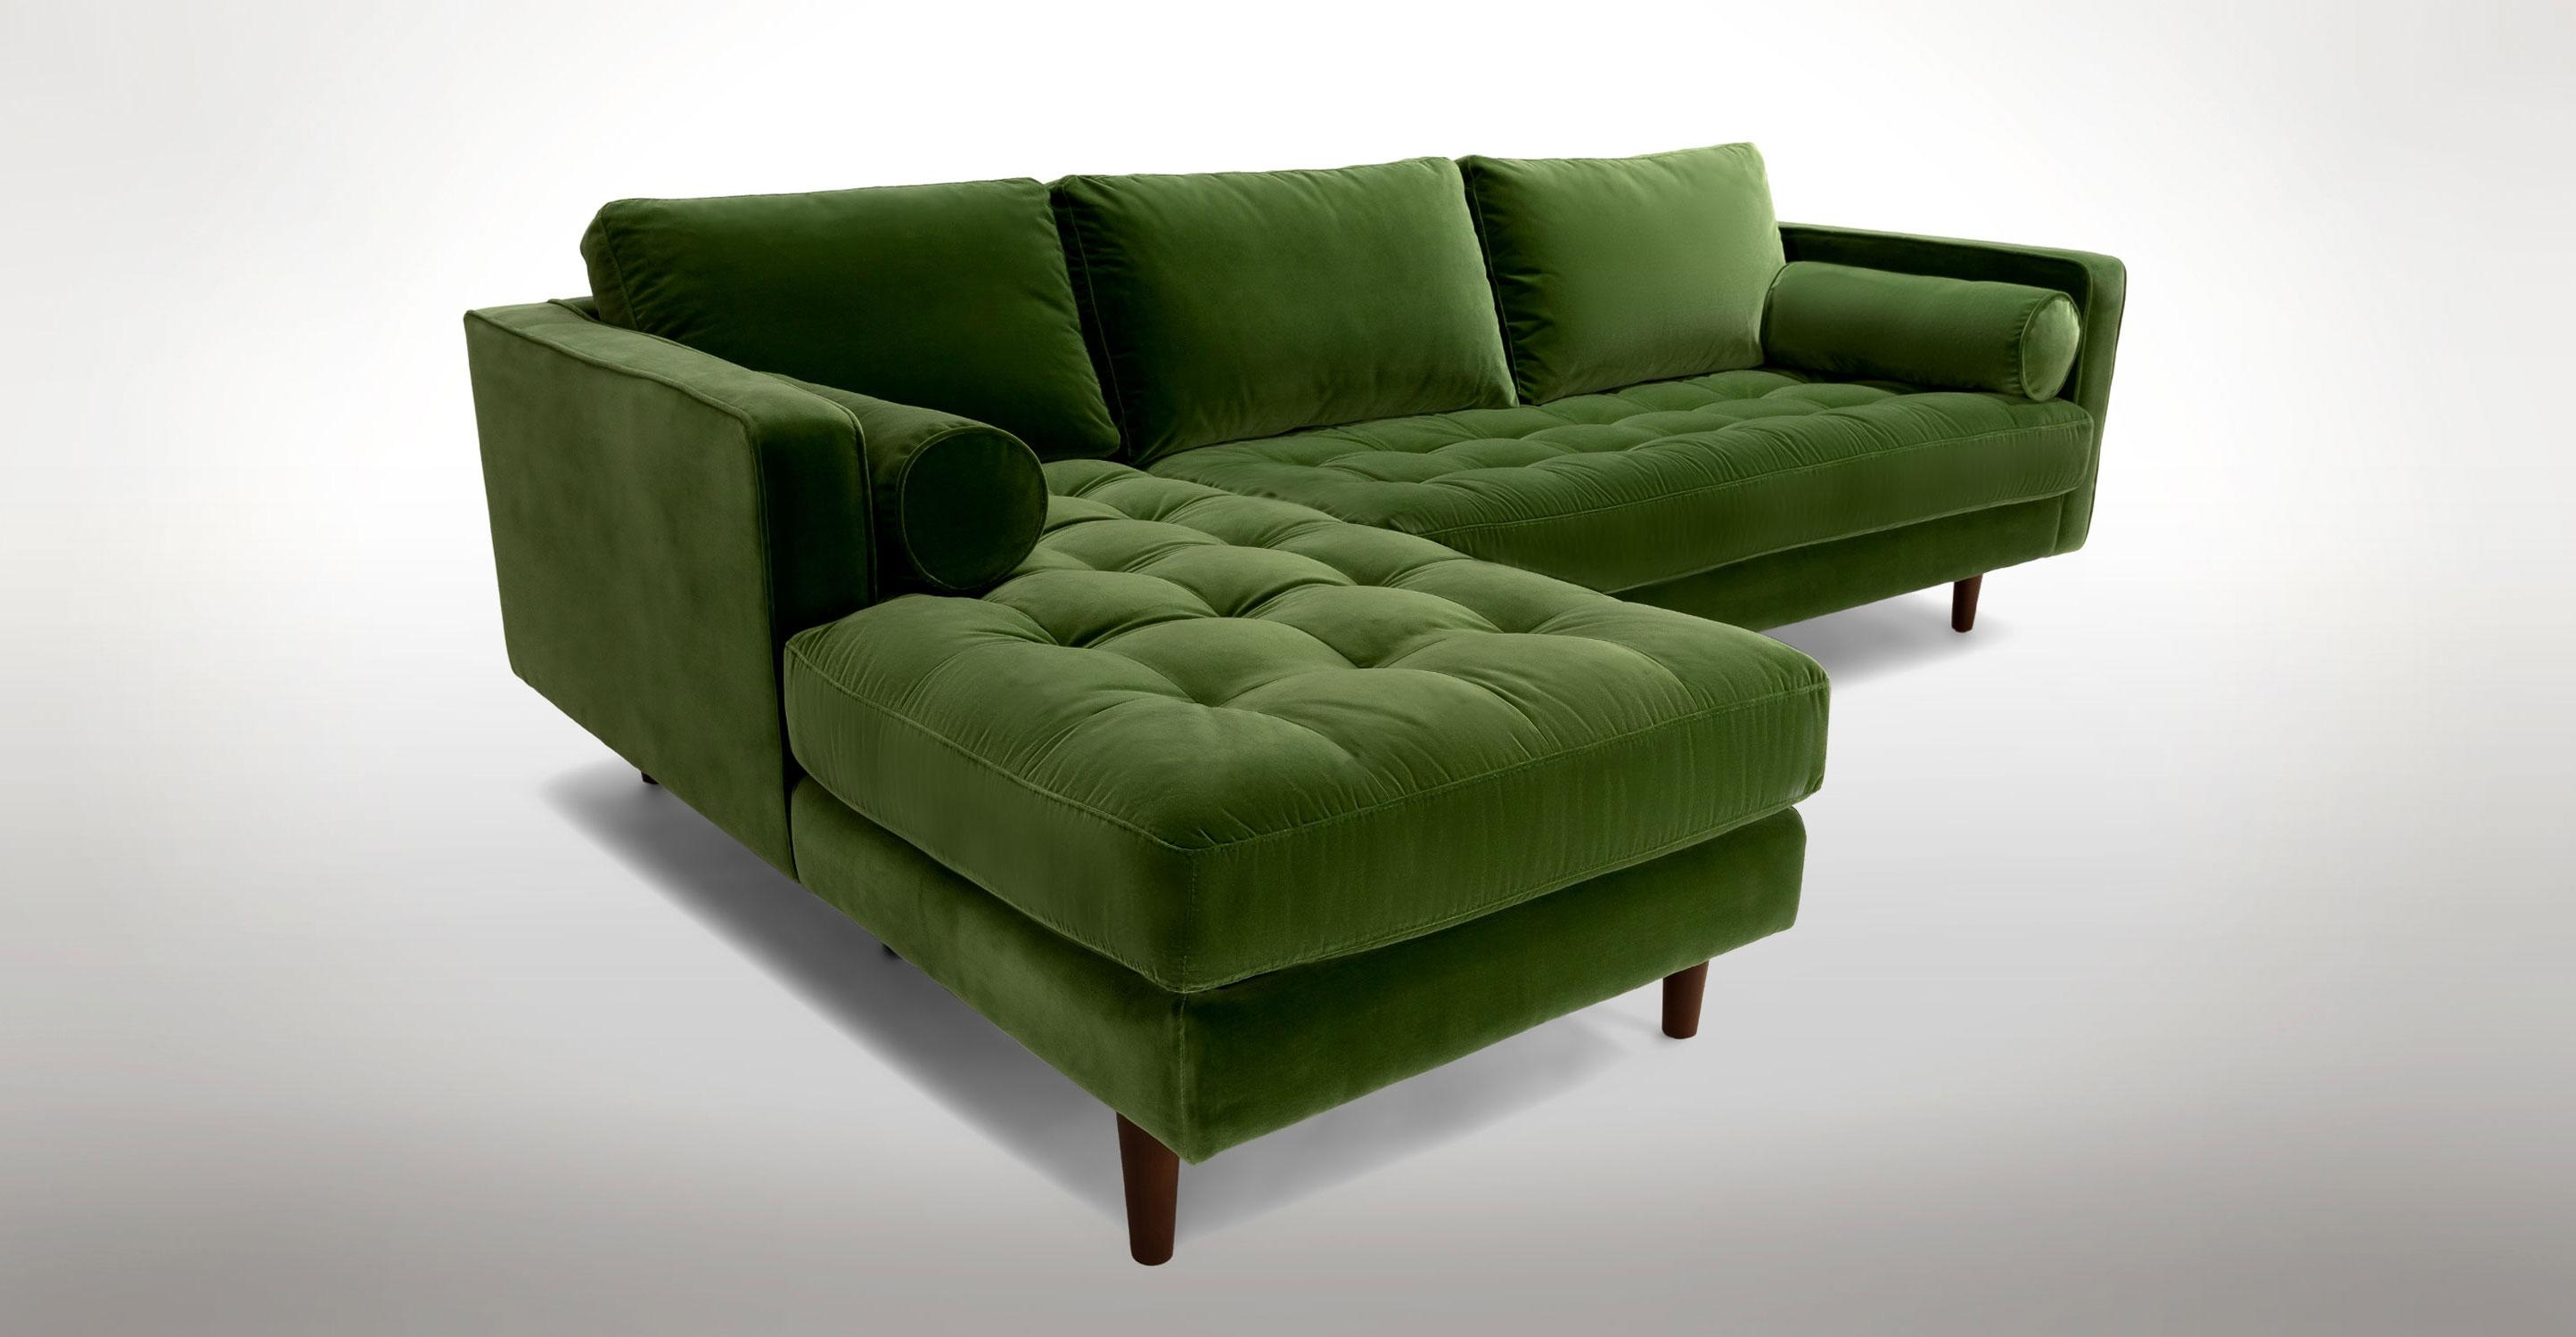 Sofas Center : Green Velvet Sofa Unique Pictures Inspirations Ikea Within Green Sectional Sofa (Image 14 of 15)